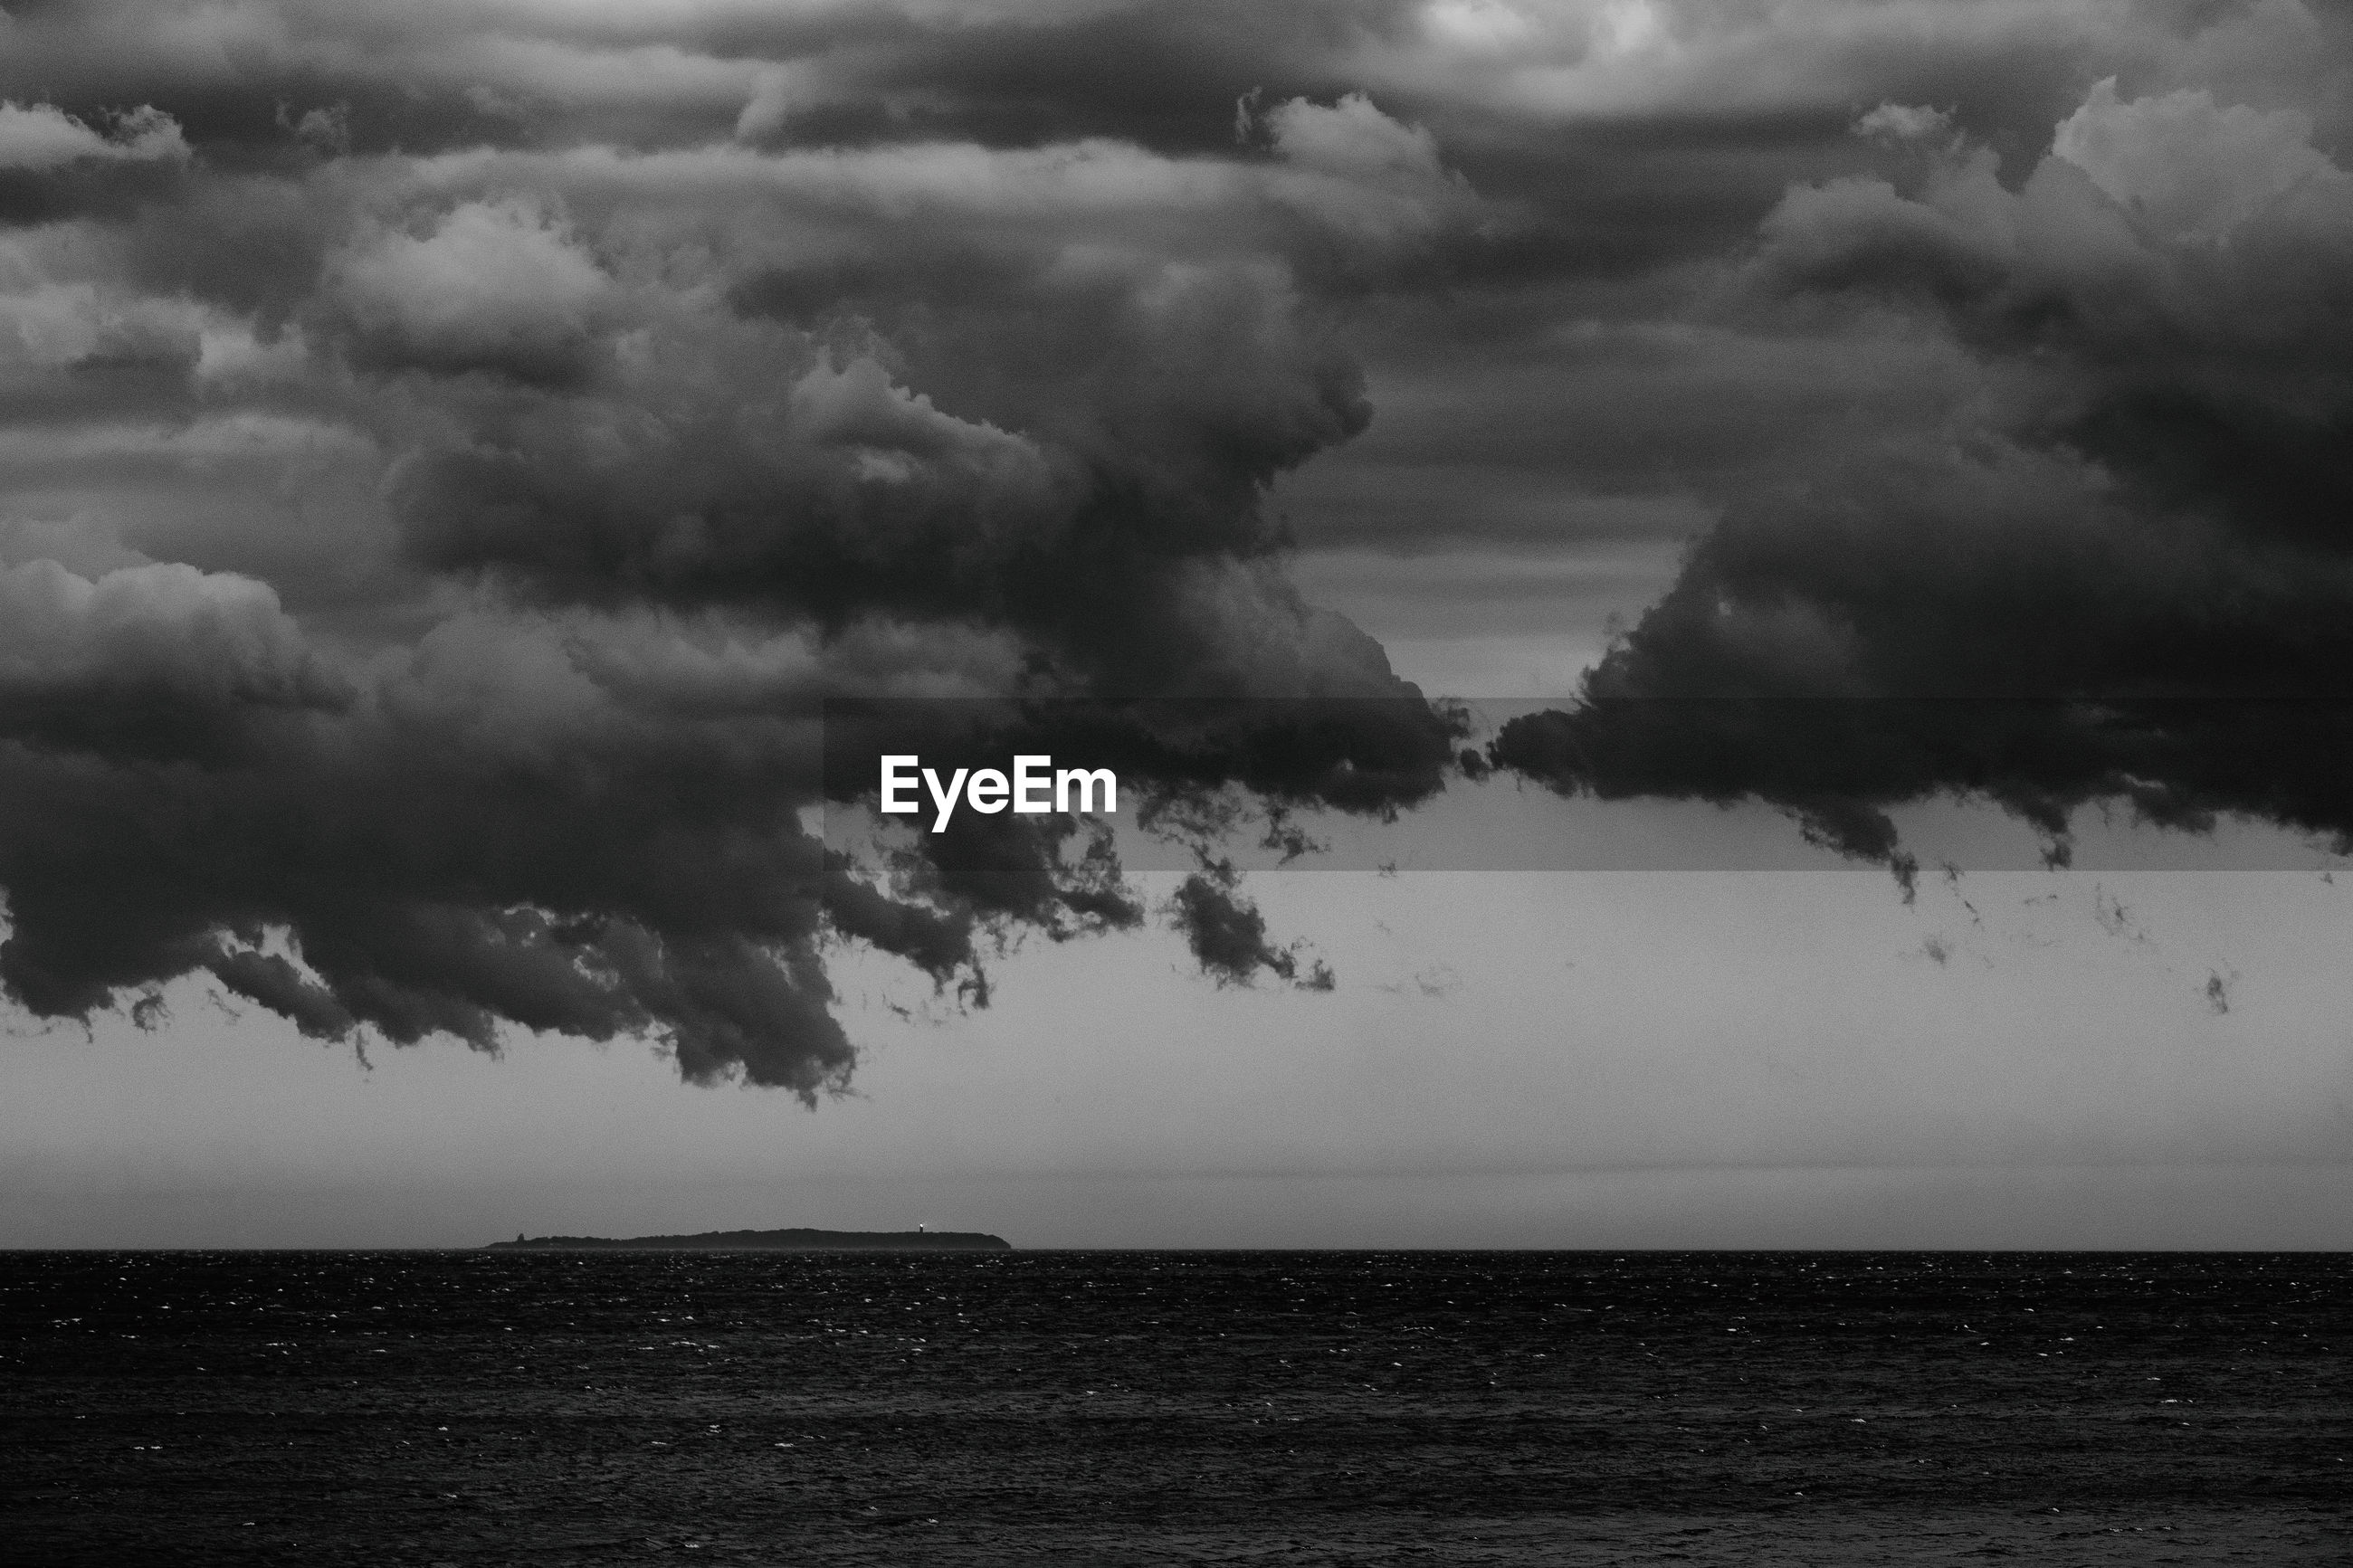 SCENIC VIEW OF SEA AGAINST STORM CLOUD SKY